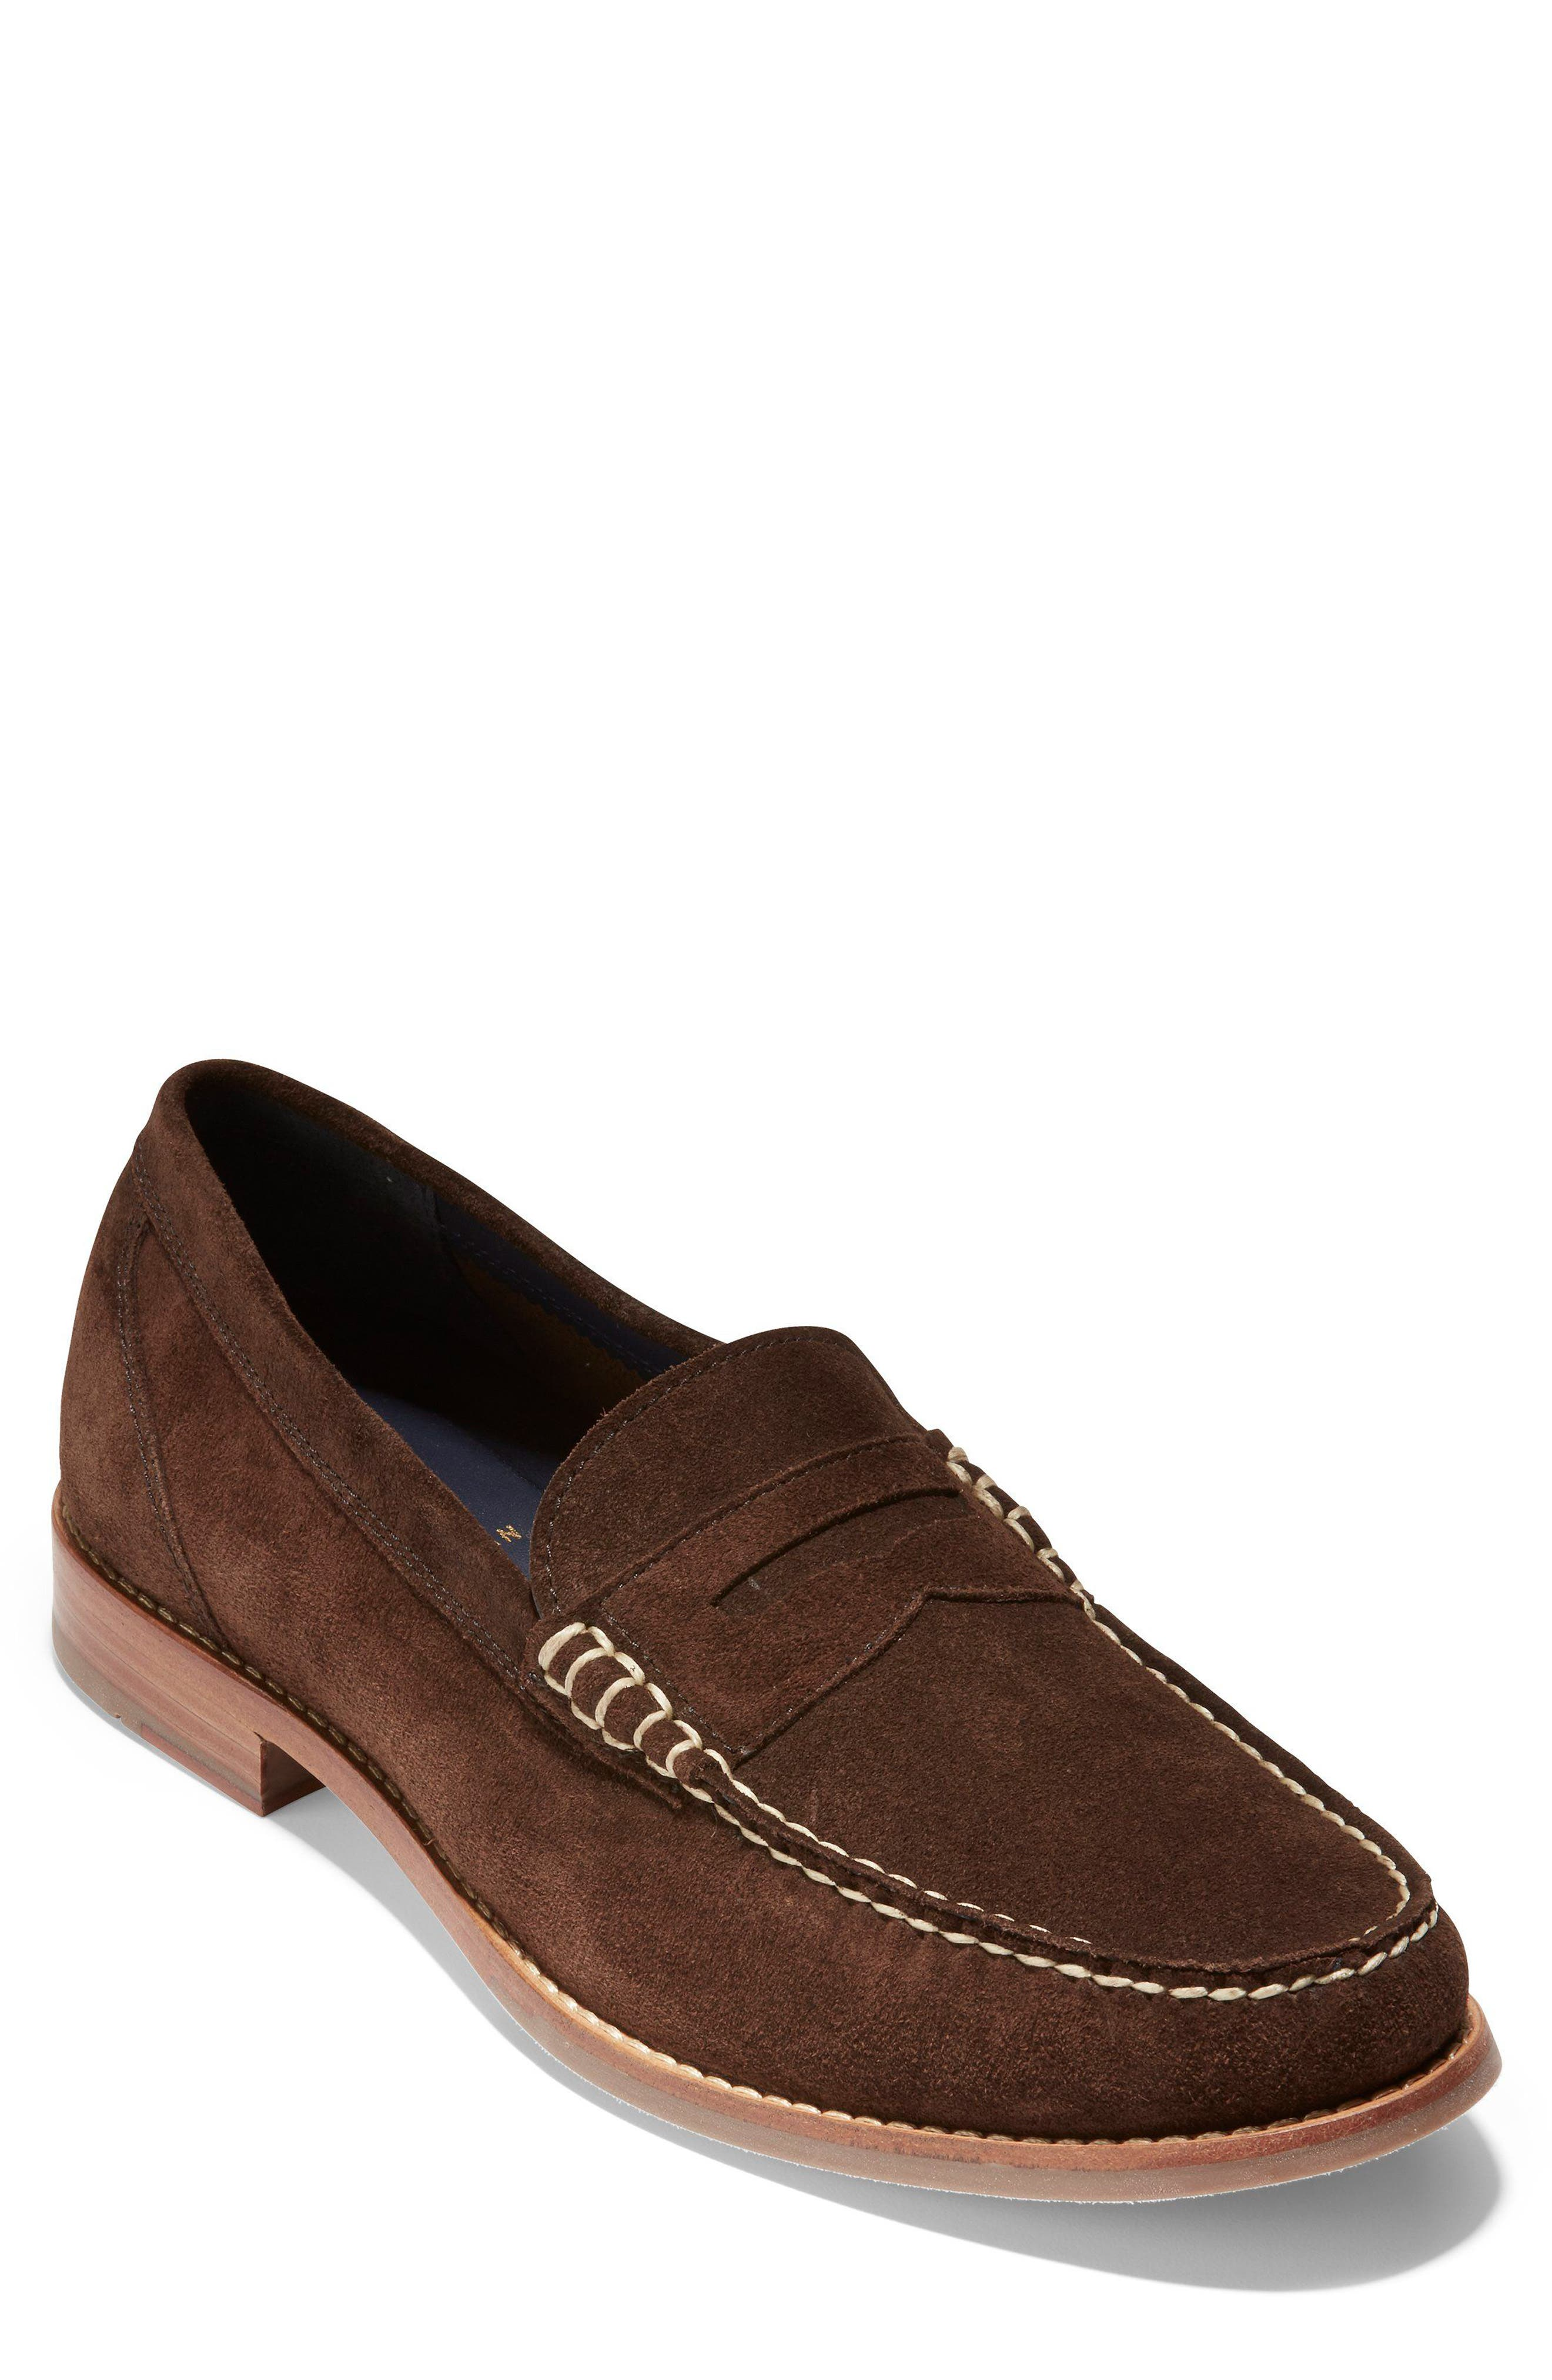 'Pinch Grand' Penny Loafer,                             Main thumbnail 1, color,                             Brown Suede